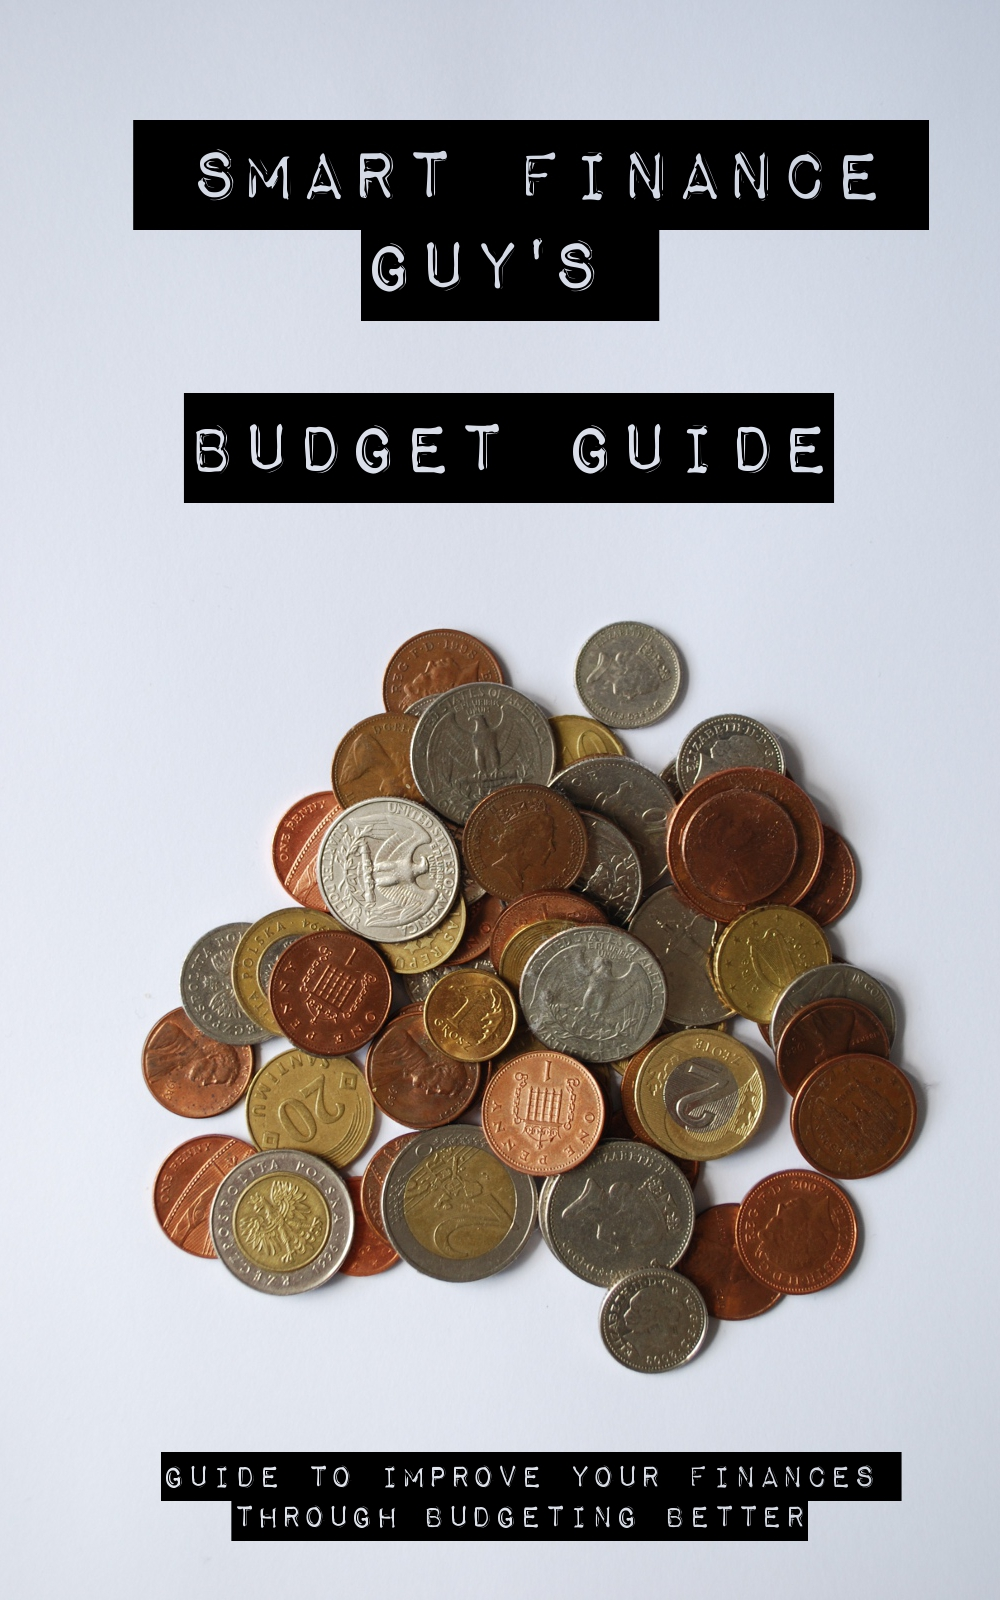 Smart Finance Guy's Budget Guide